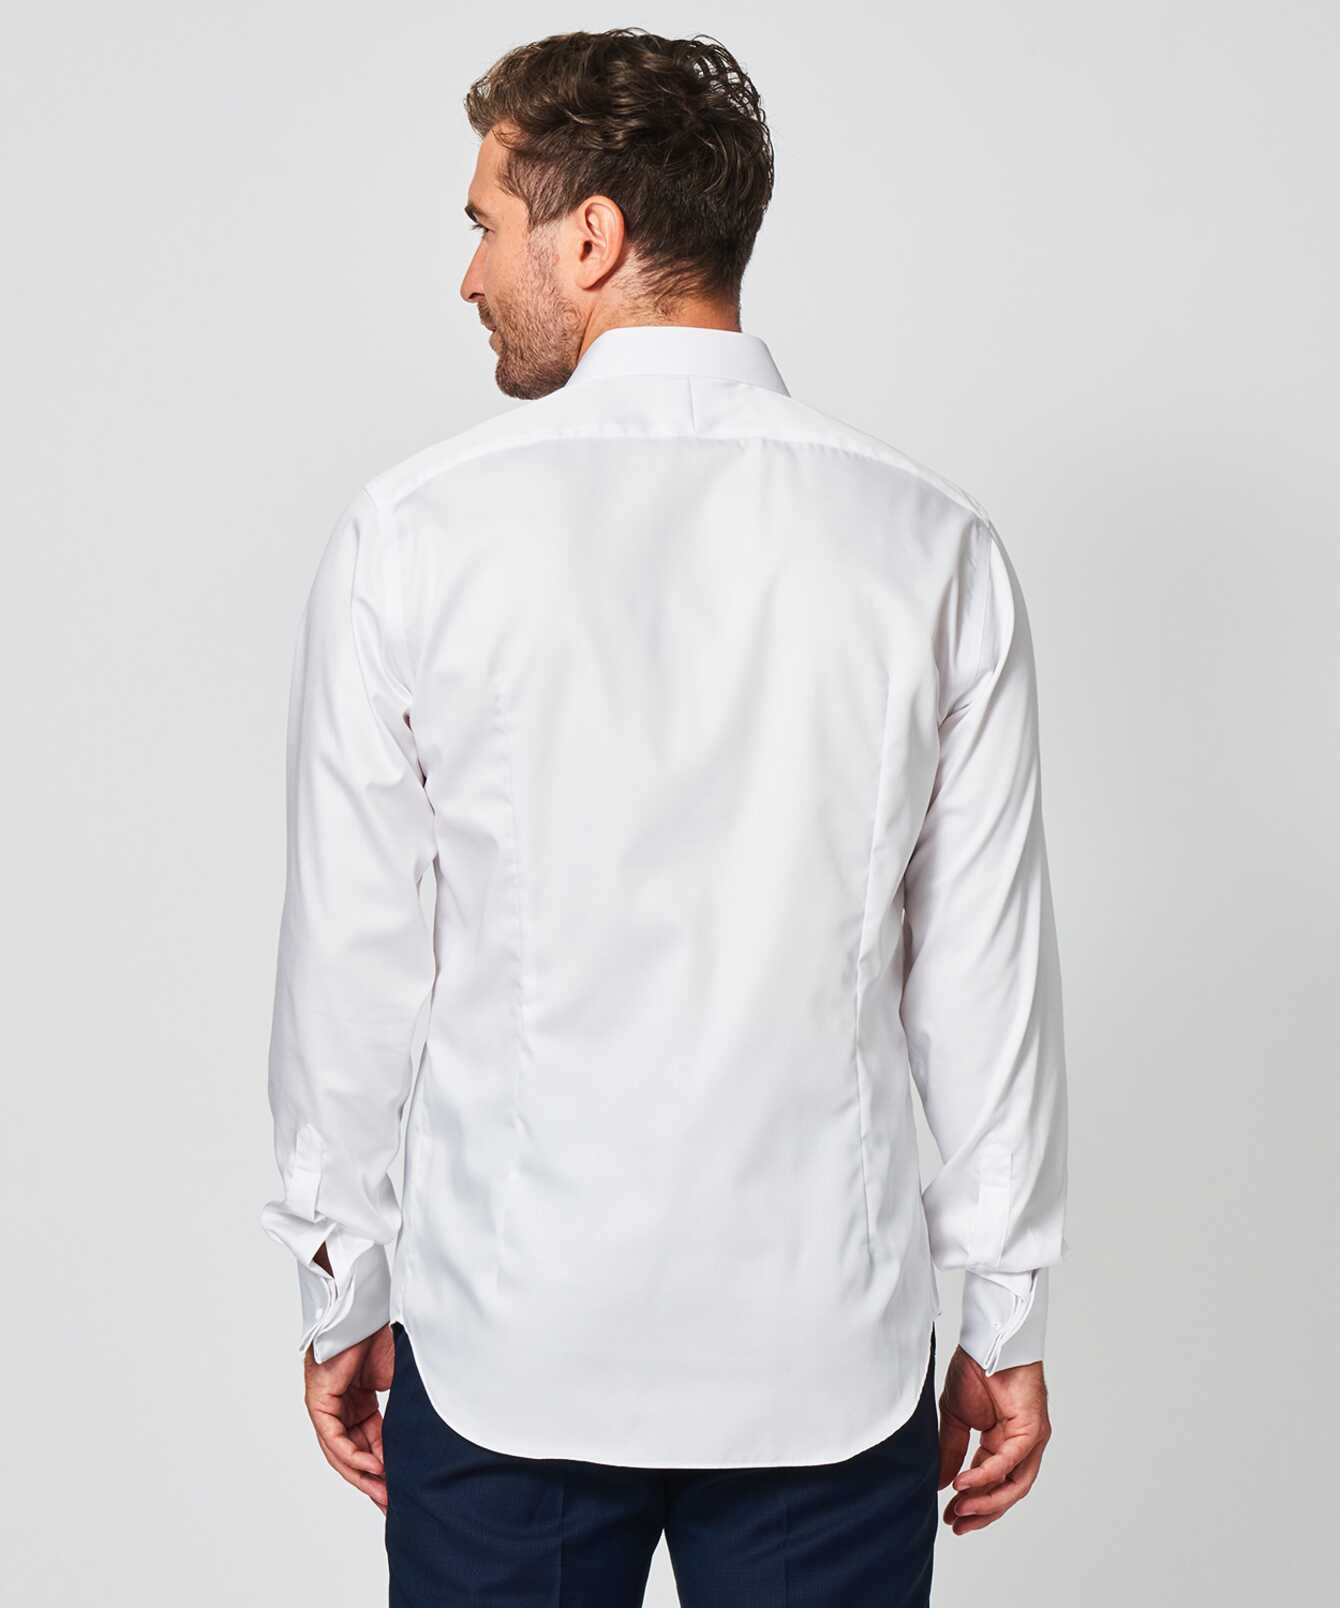 Shirt Grand Twill Non-Iron The Shirt Factory